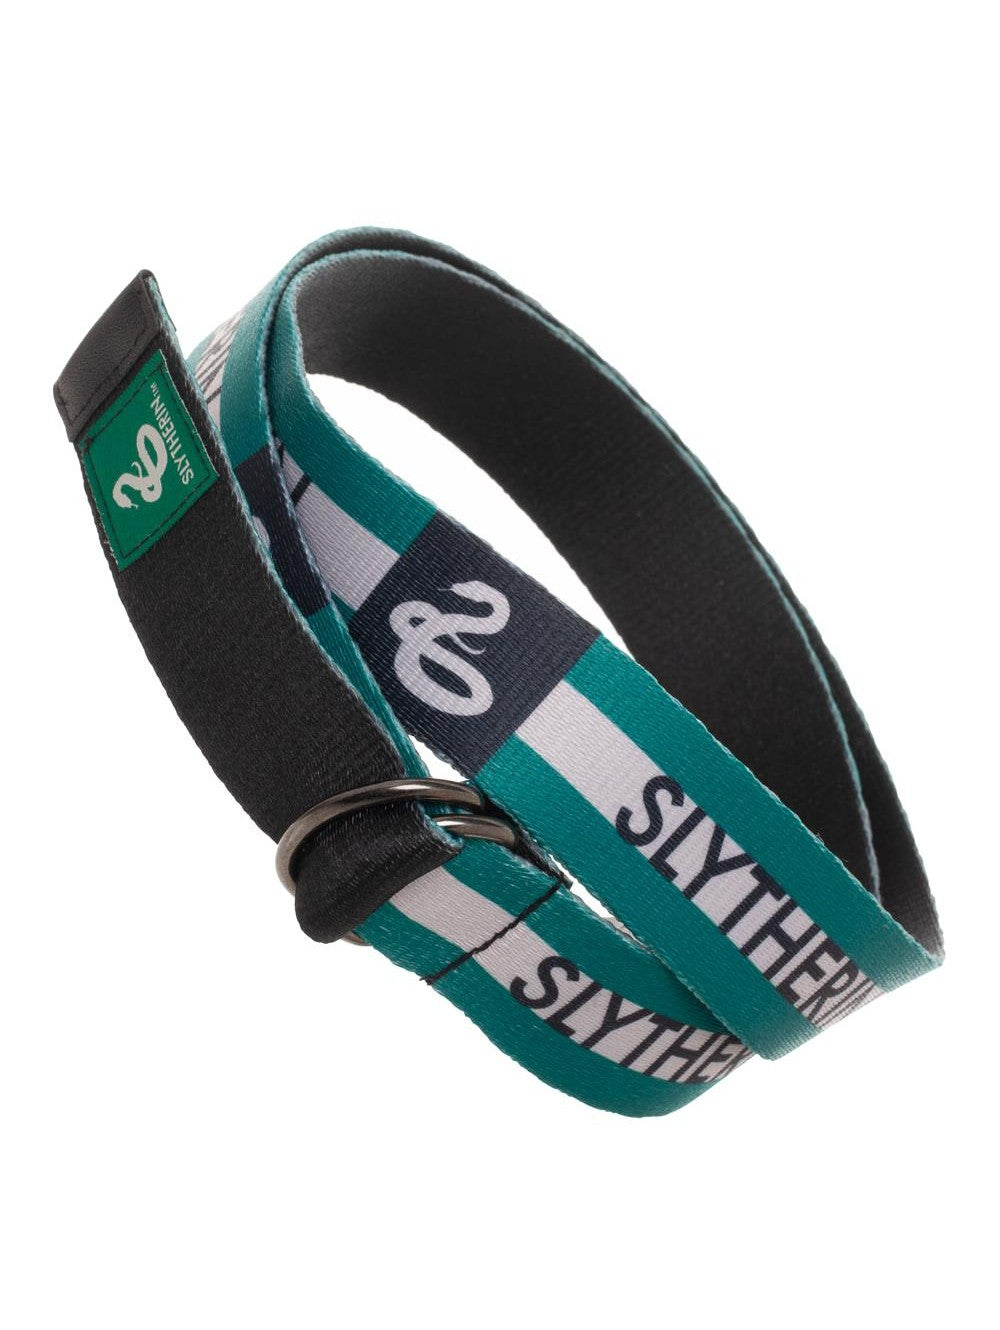 Harry Potter - Slytherin D Ring Web Belt **NEW**